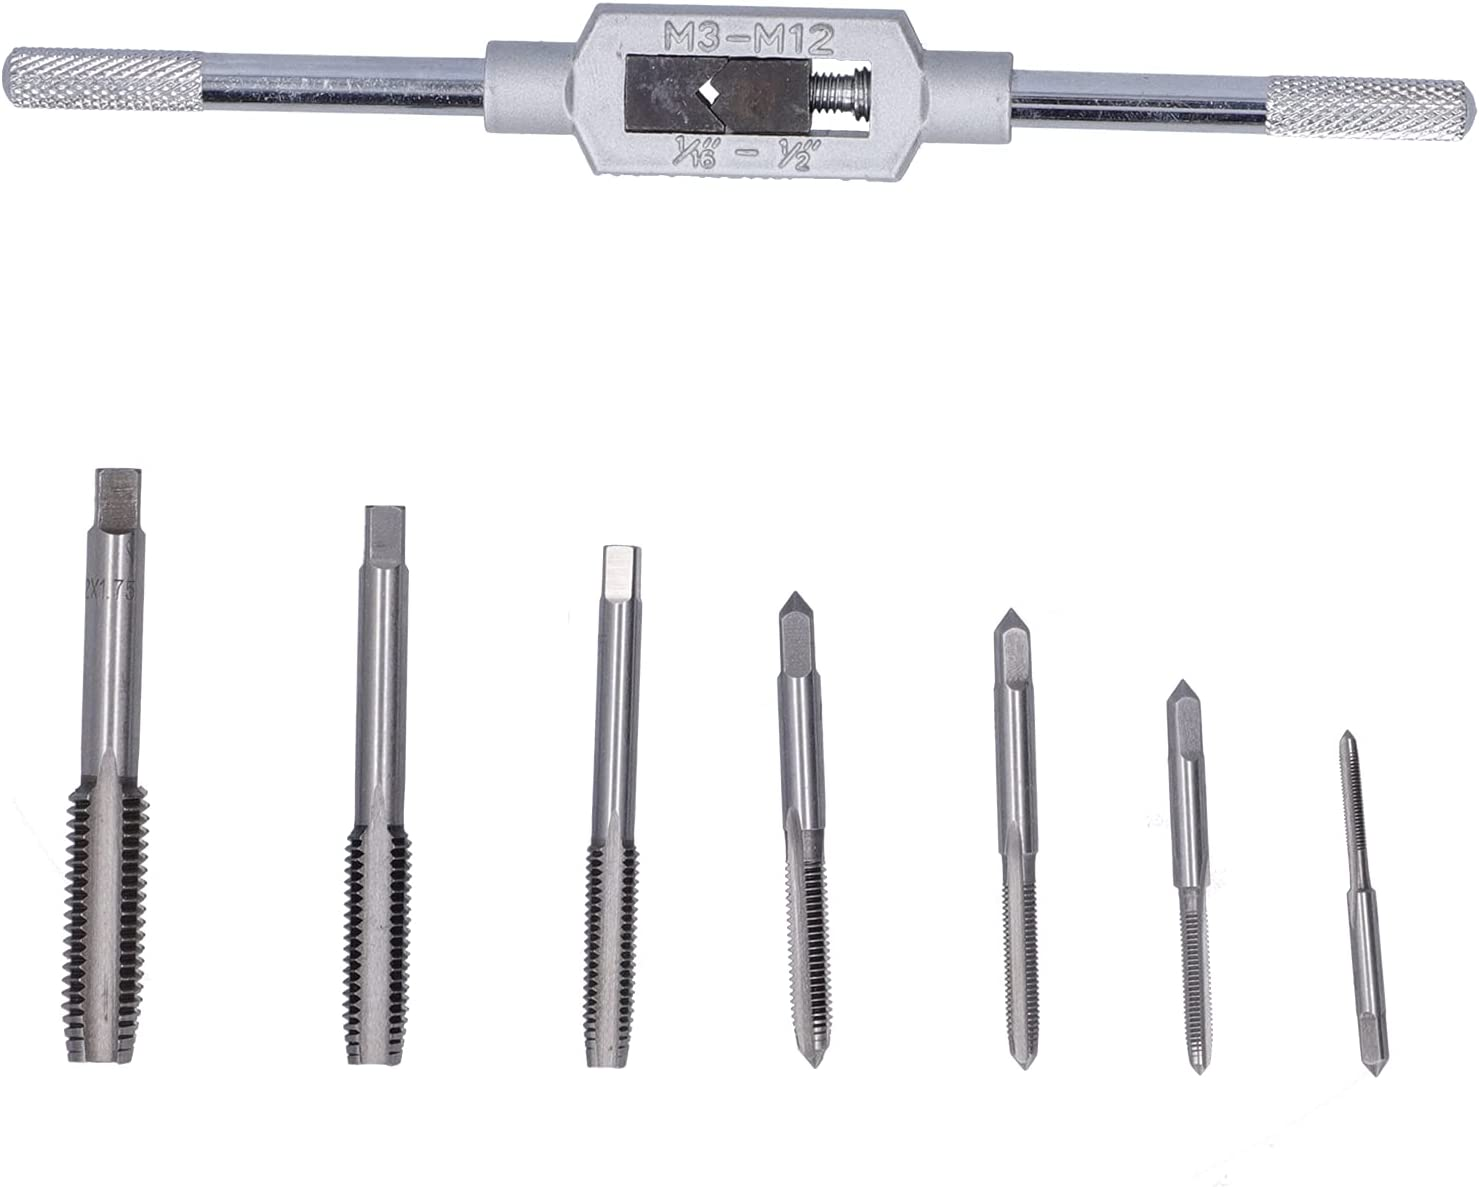 Zyyini 8Pcs Tap Die Set Wrench ans d Tools + 7 Over Virginia Beach Mall item handling ☆ Hardware